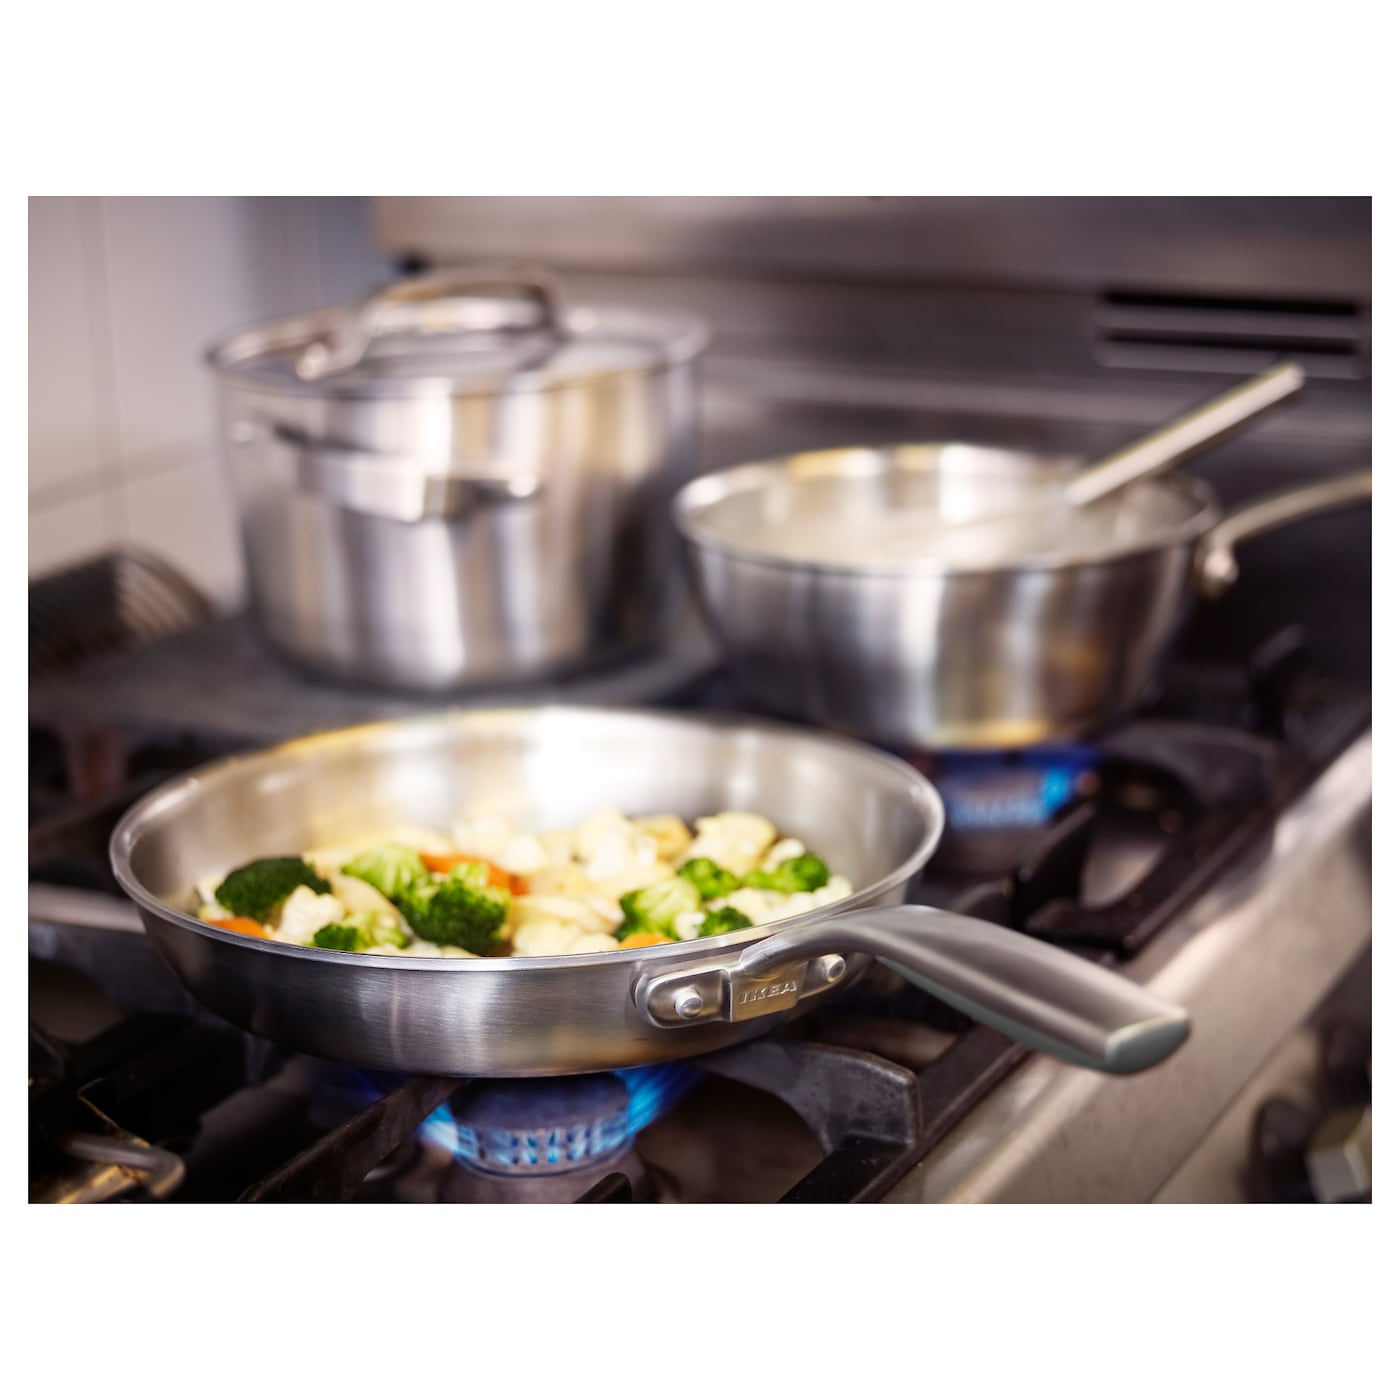 IKEA SENSUELL 4-piece cookware set Works well on all types of hobs, including induction hob.